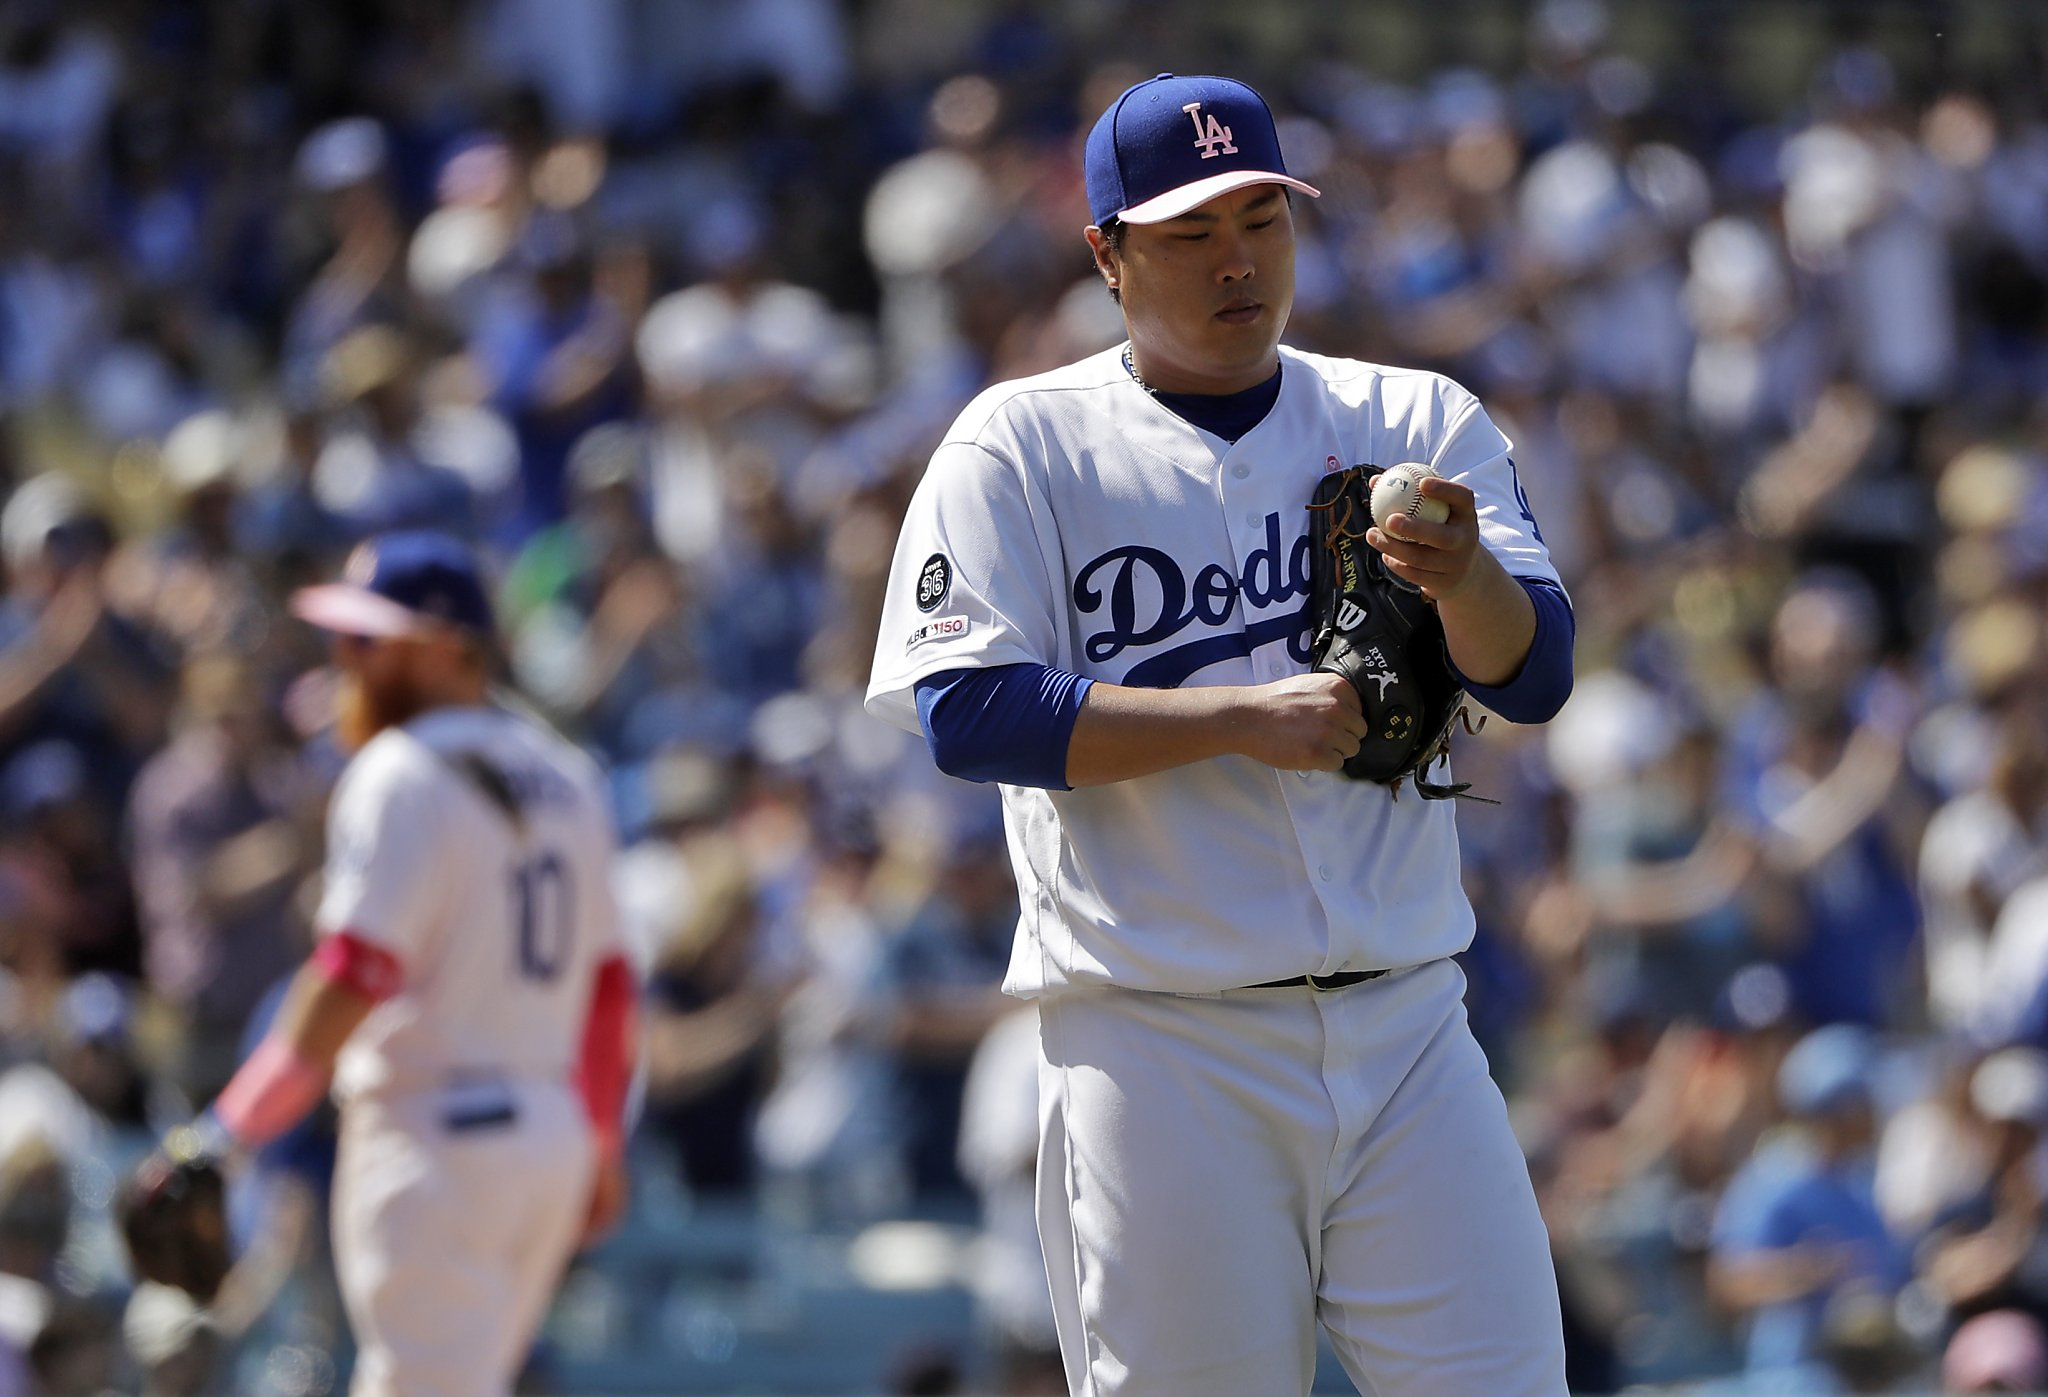 Dodgers' Hyun-Jin Ryu takes no-hitter into eighth, combines